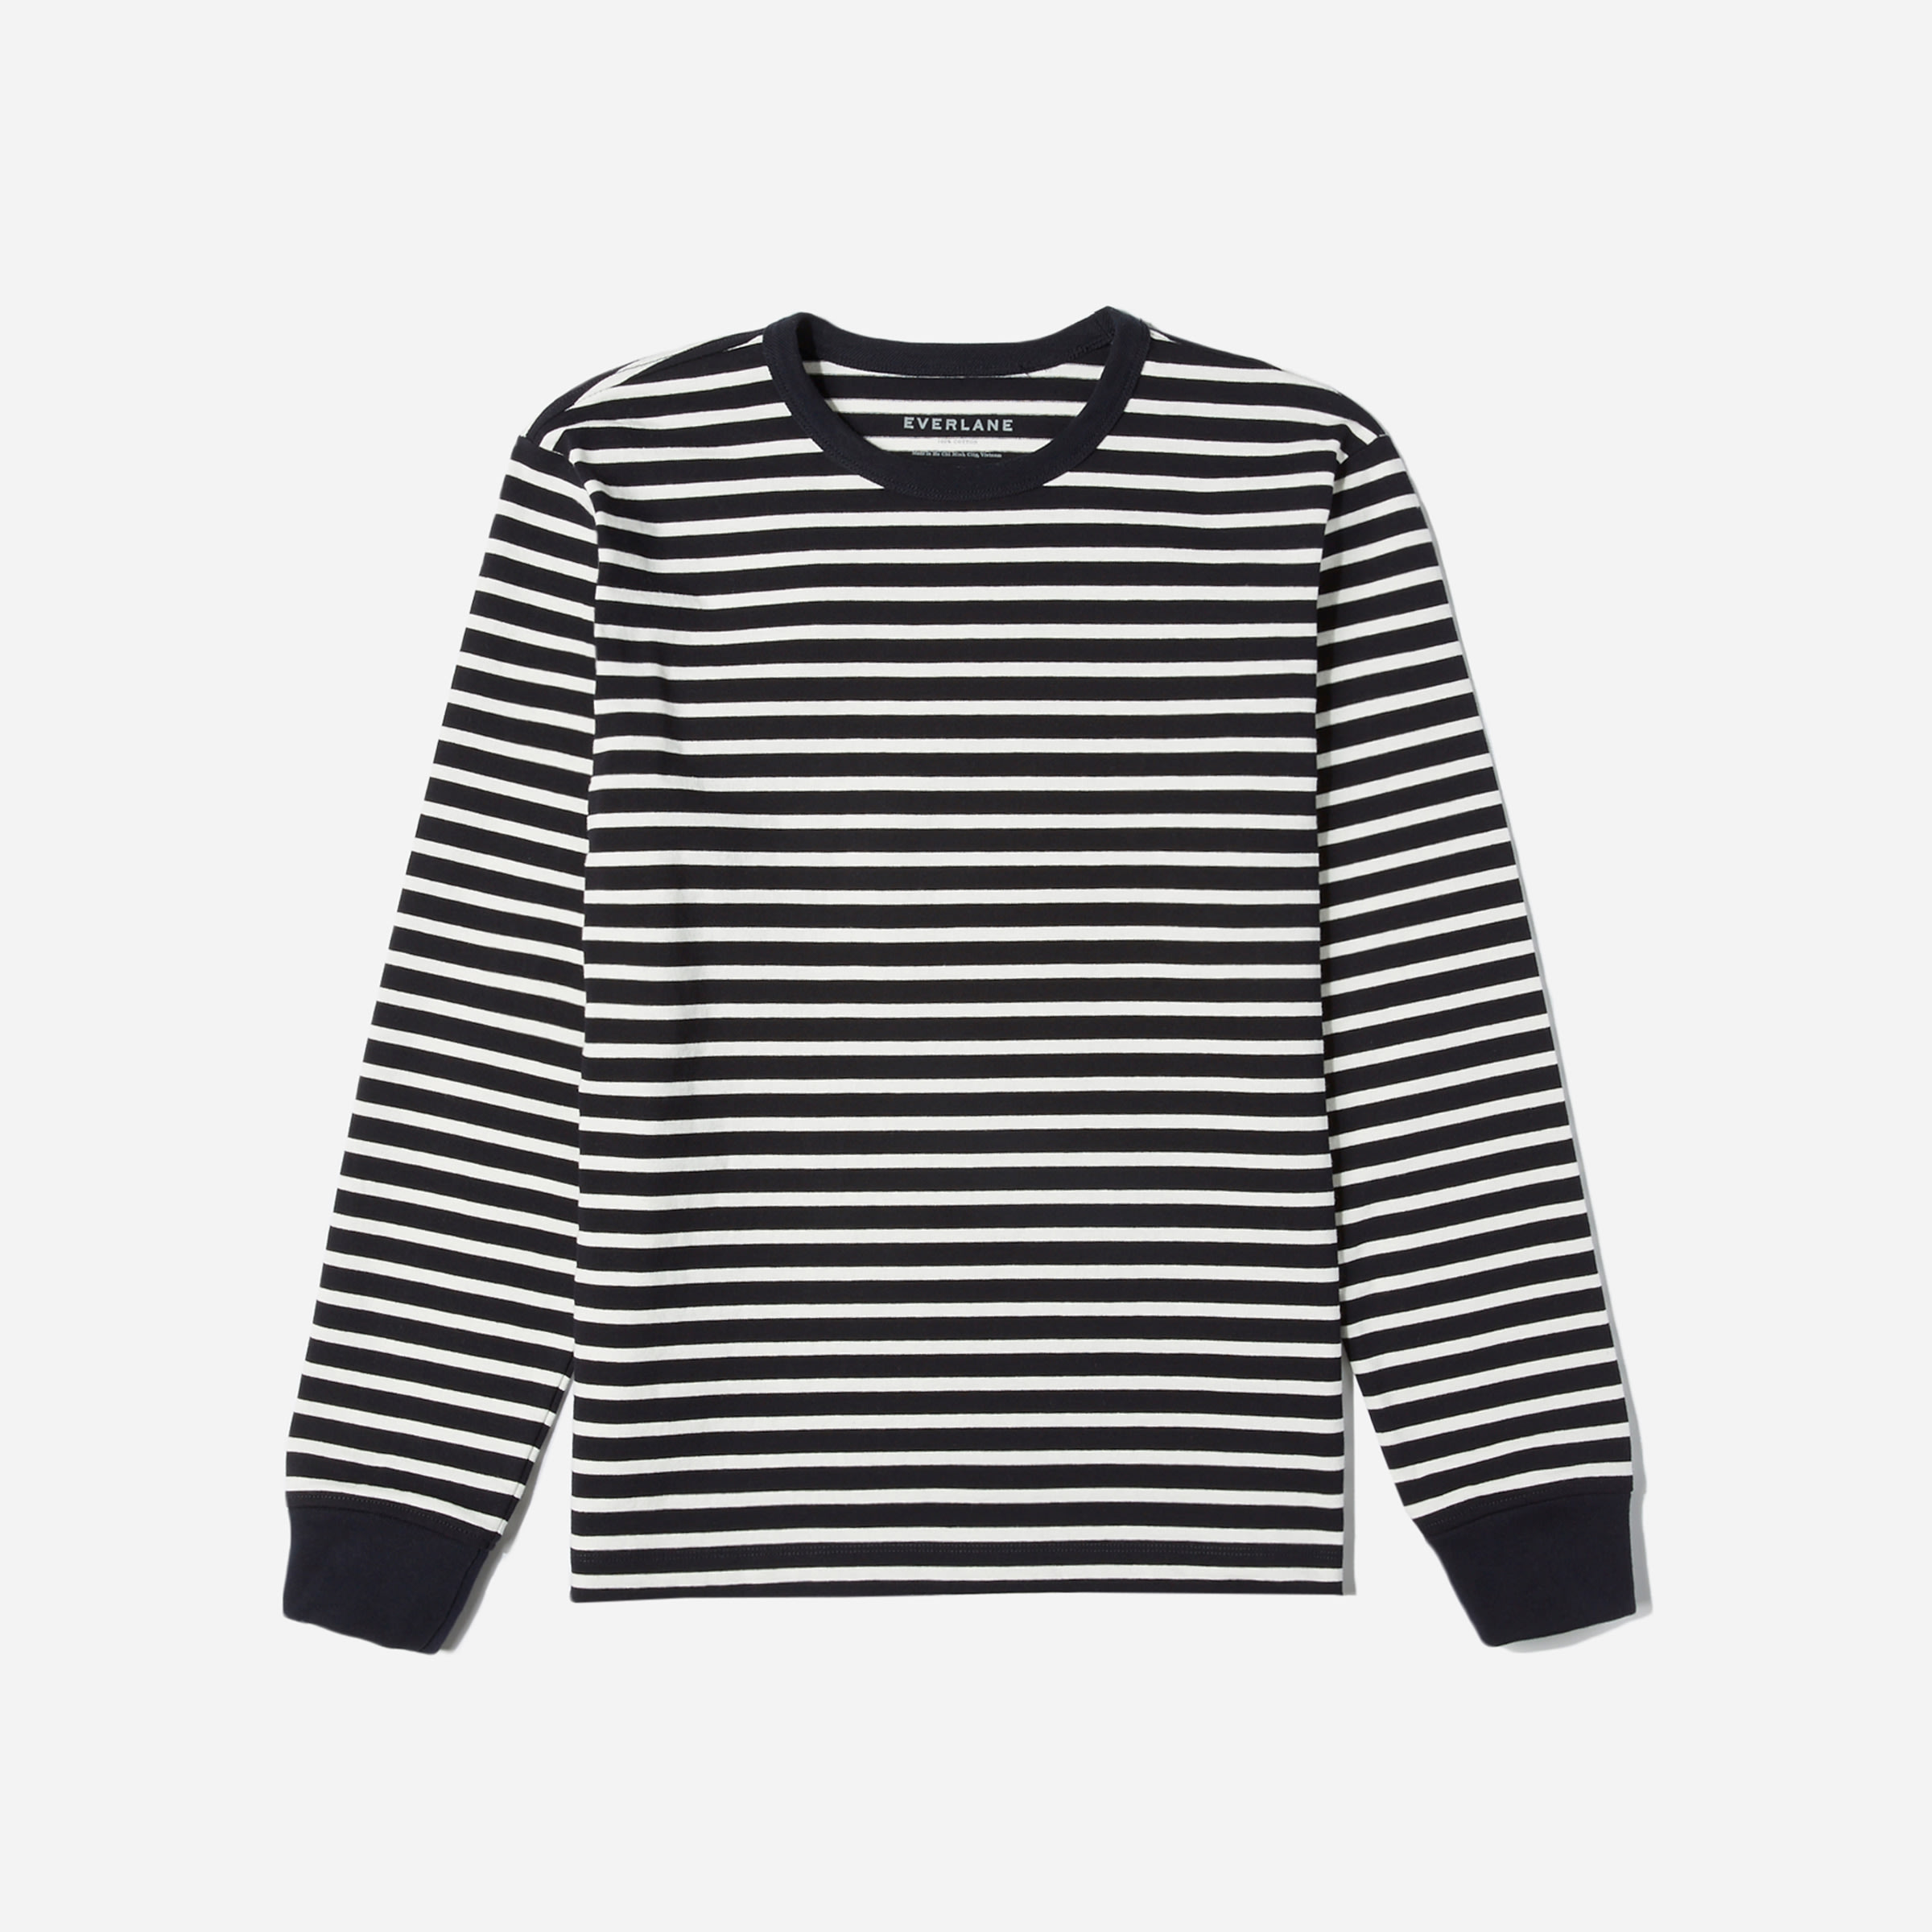 a75f0566 Mens Blue And White Striped Long Sleeve T Shirt